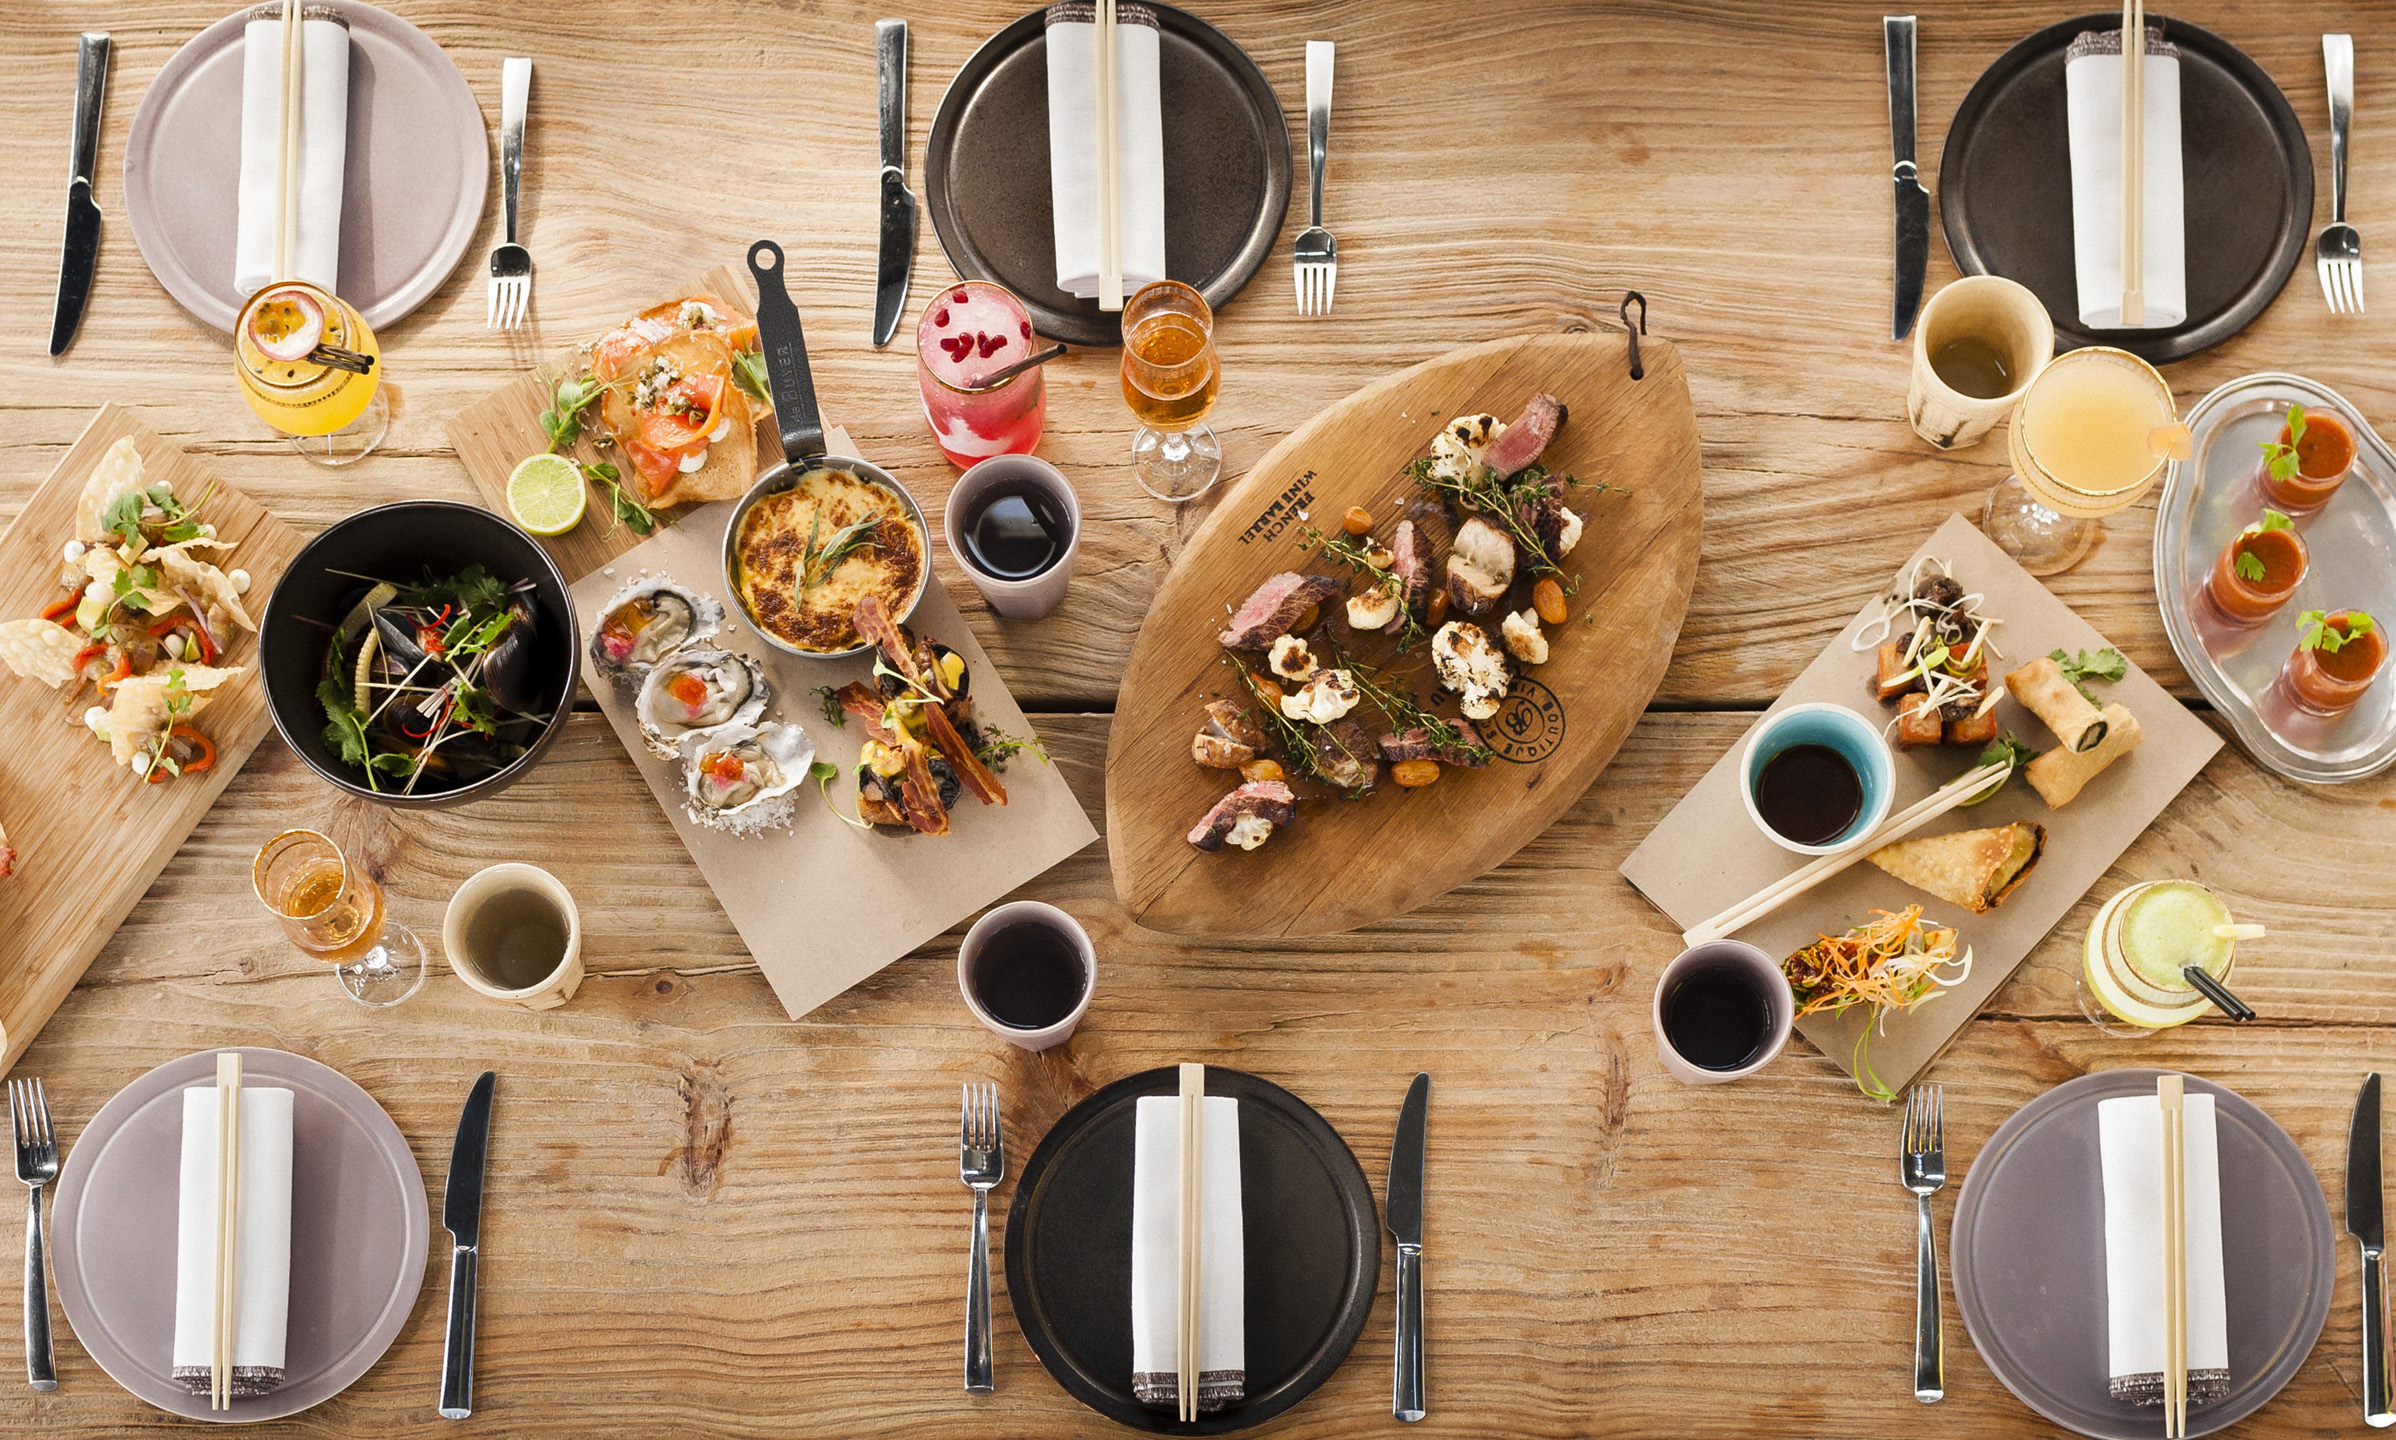 kitchen table with food images kitchen table restaurant Kitchen Table With Food Kitchen Table With Food